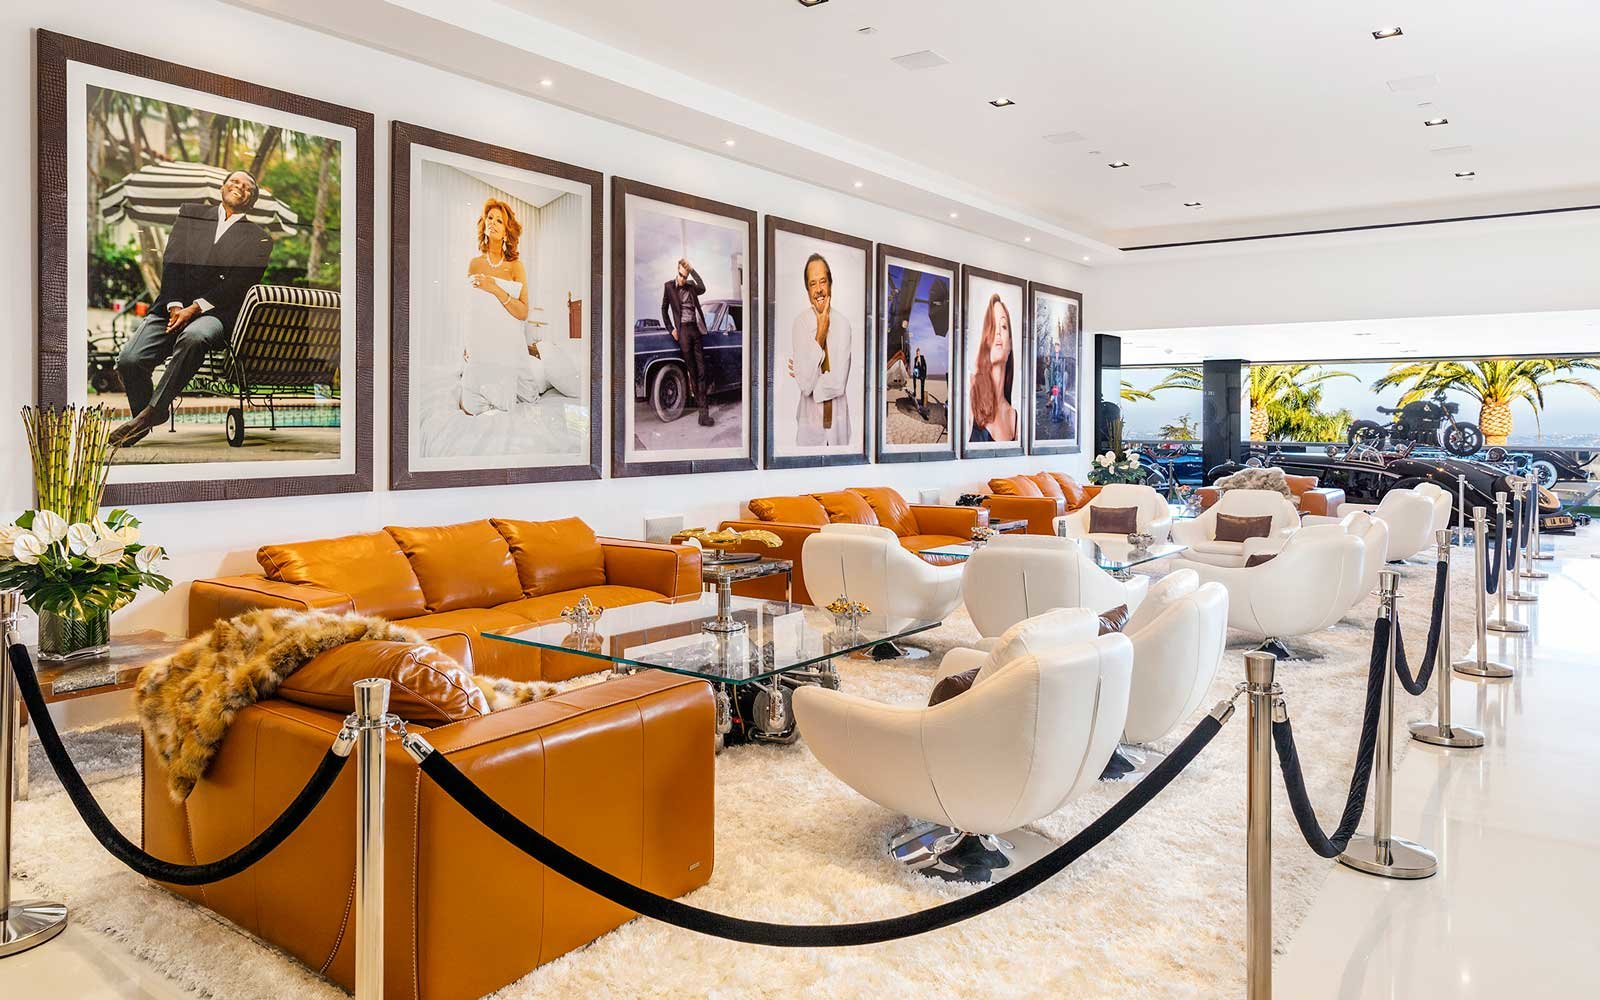 Photos From Inside the Most Expensive Home in America